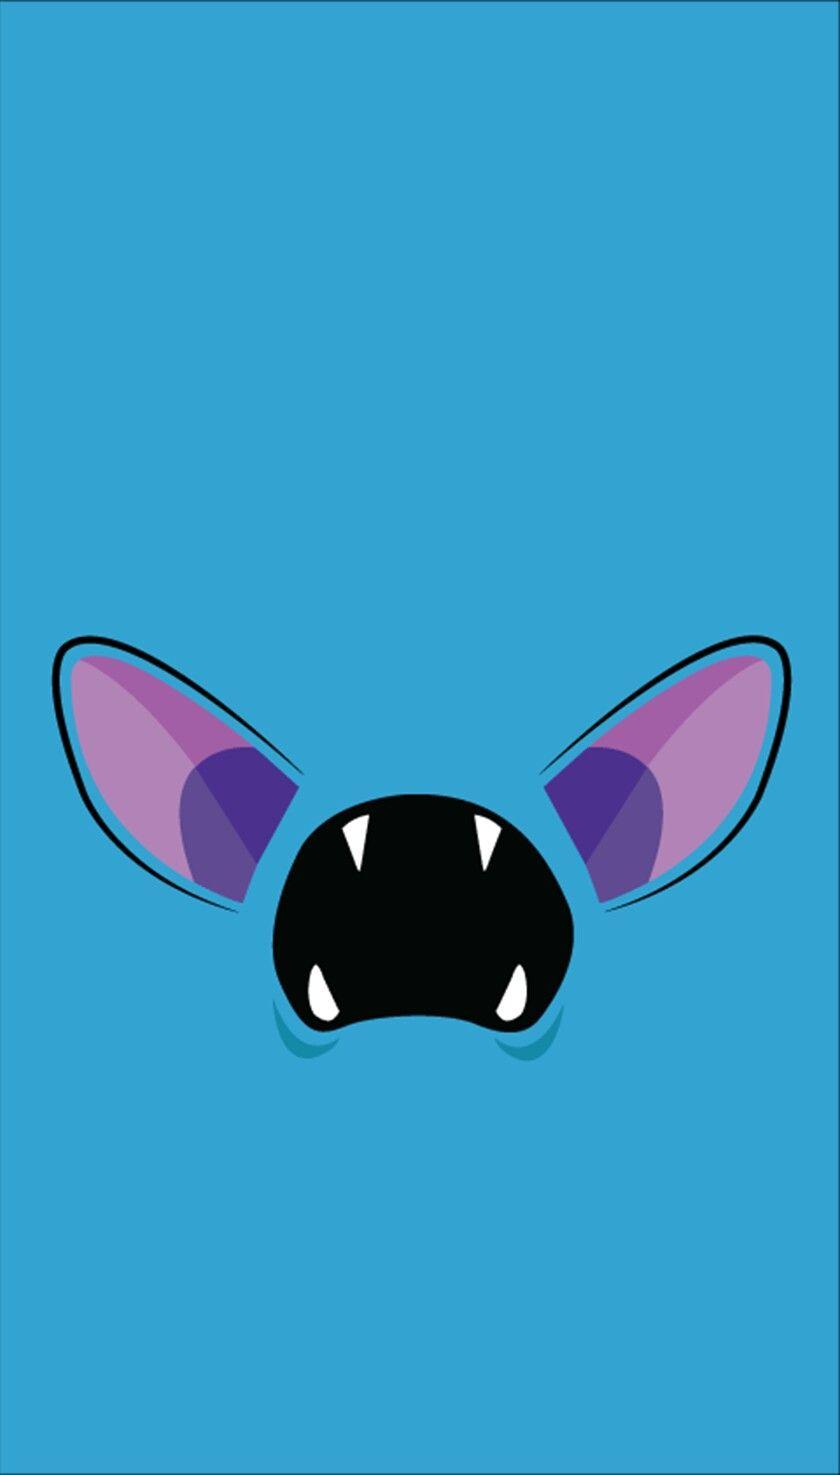 Zubat wallpapers ❤